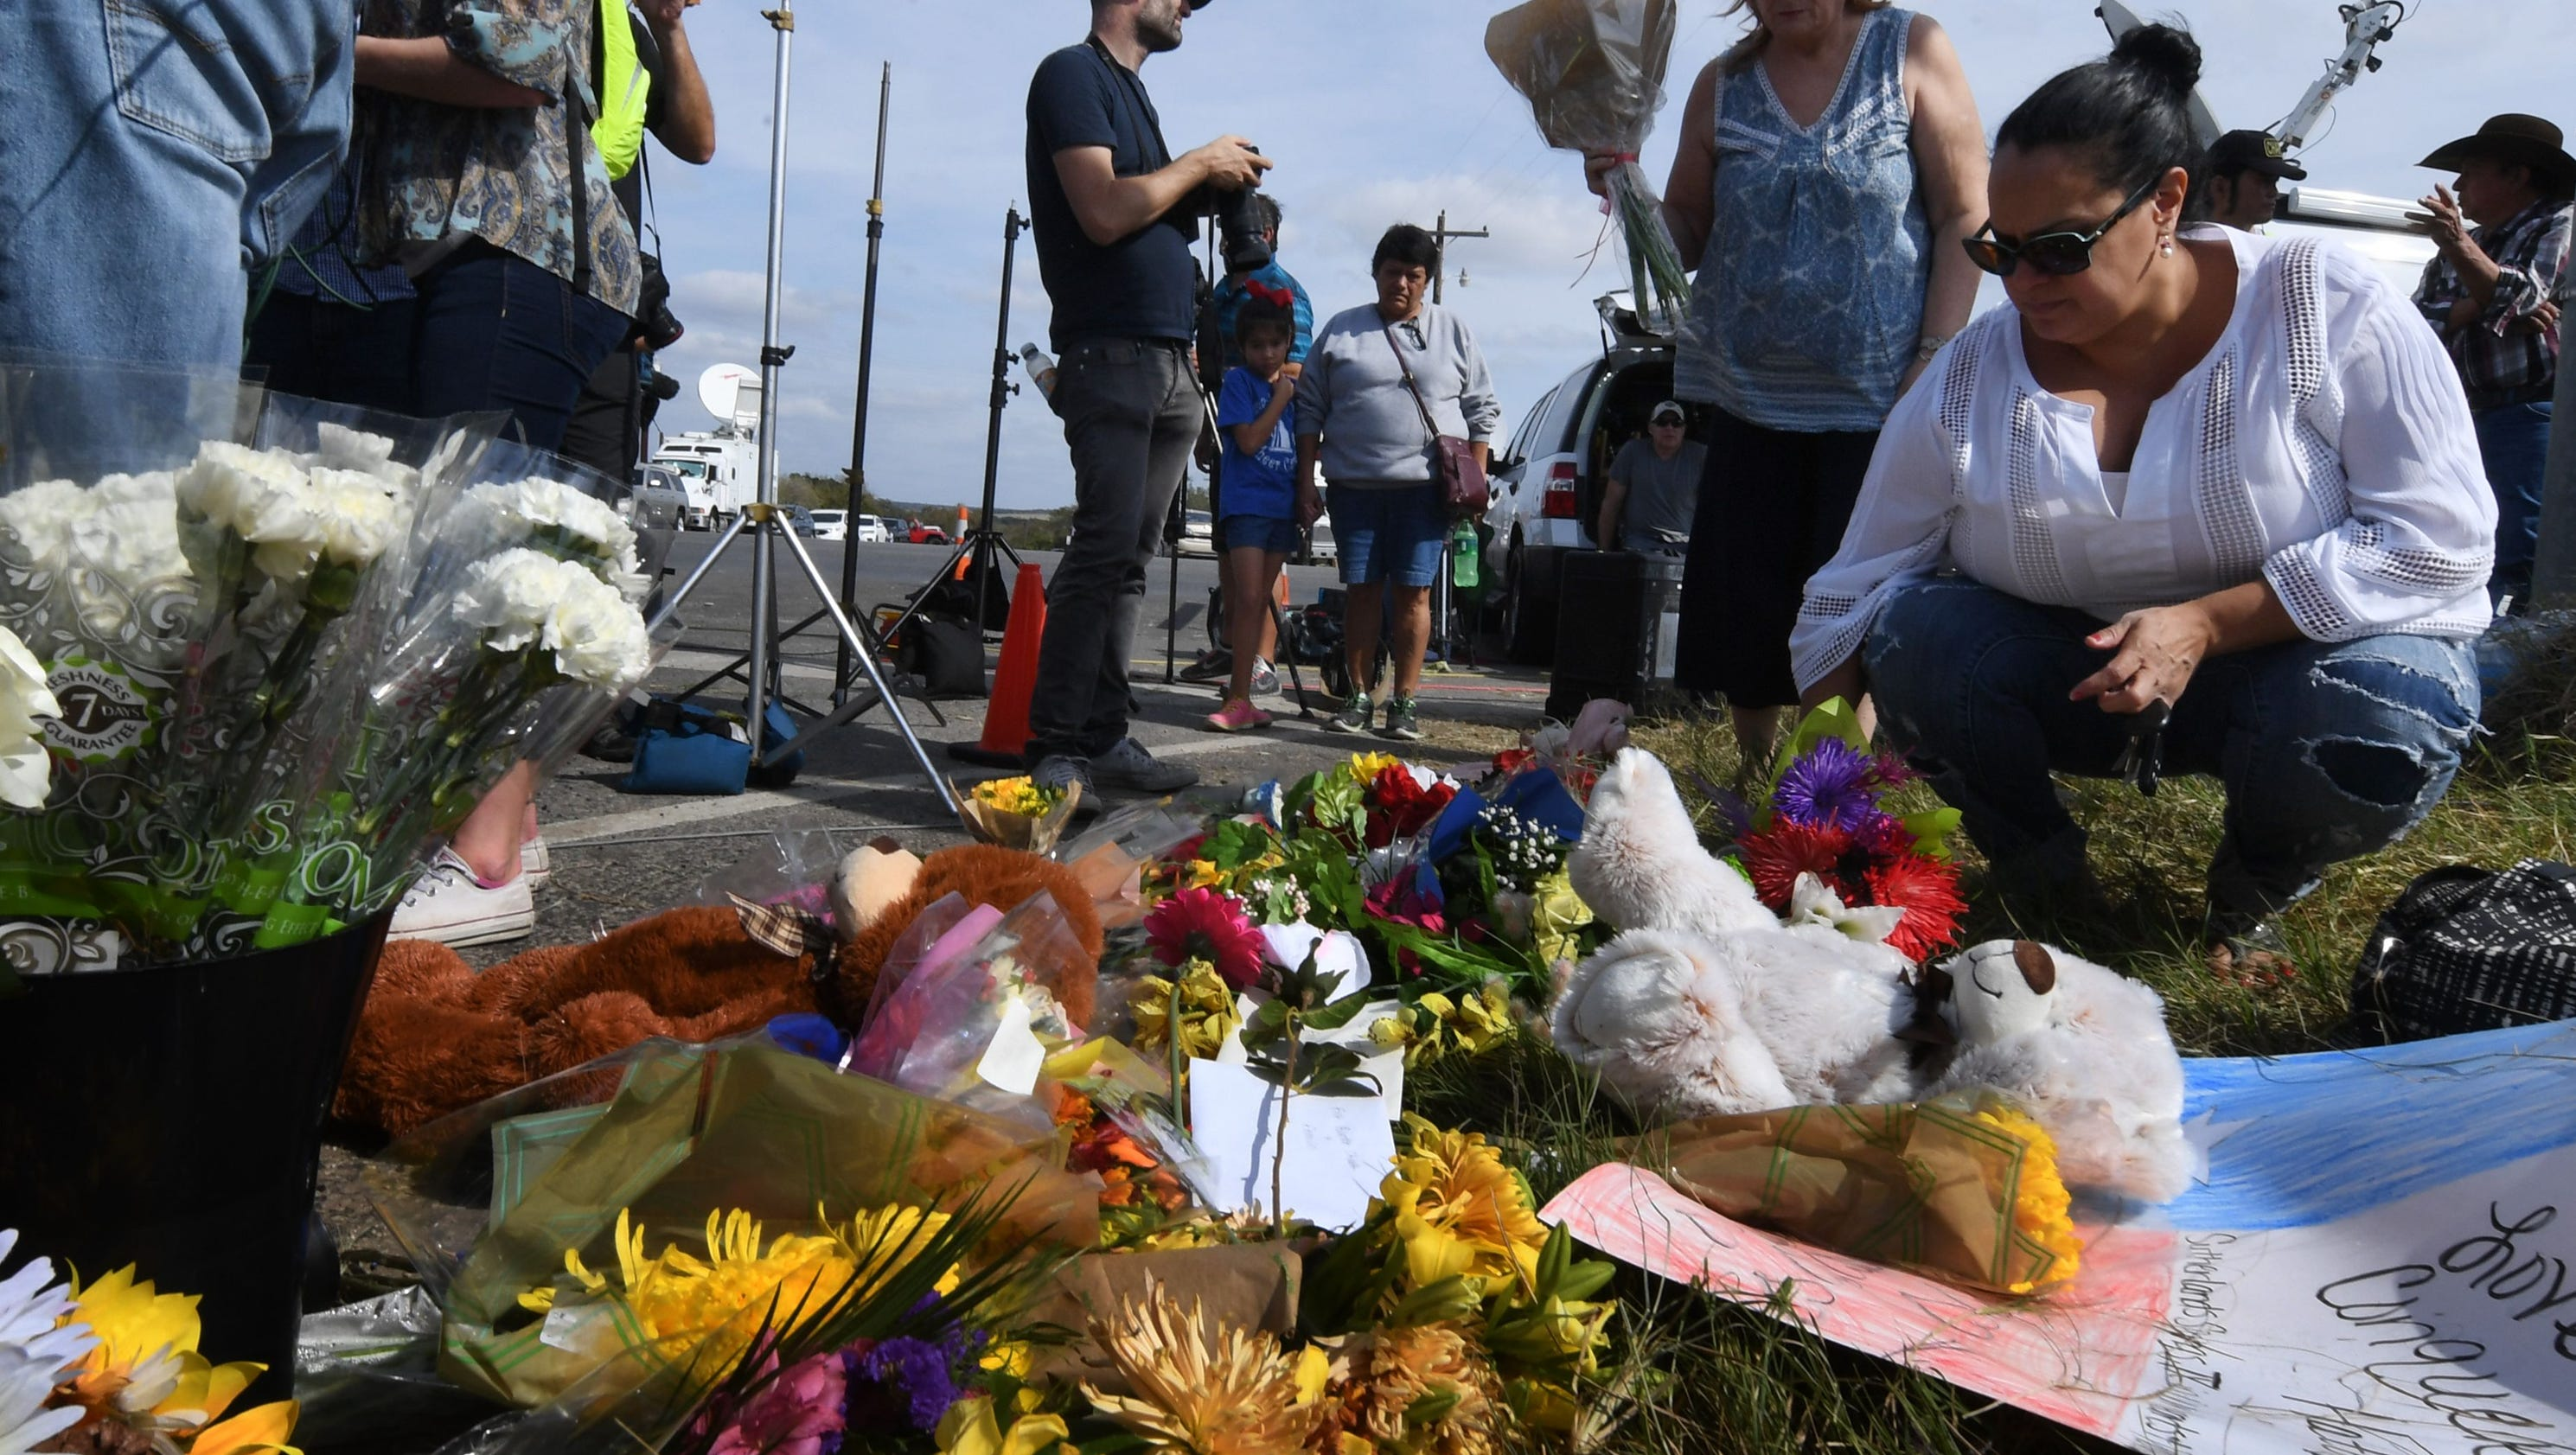 Families, couples, children: These are the lives we lost in the Texas church shooting